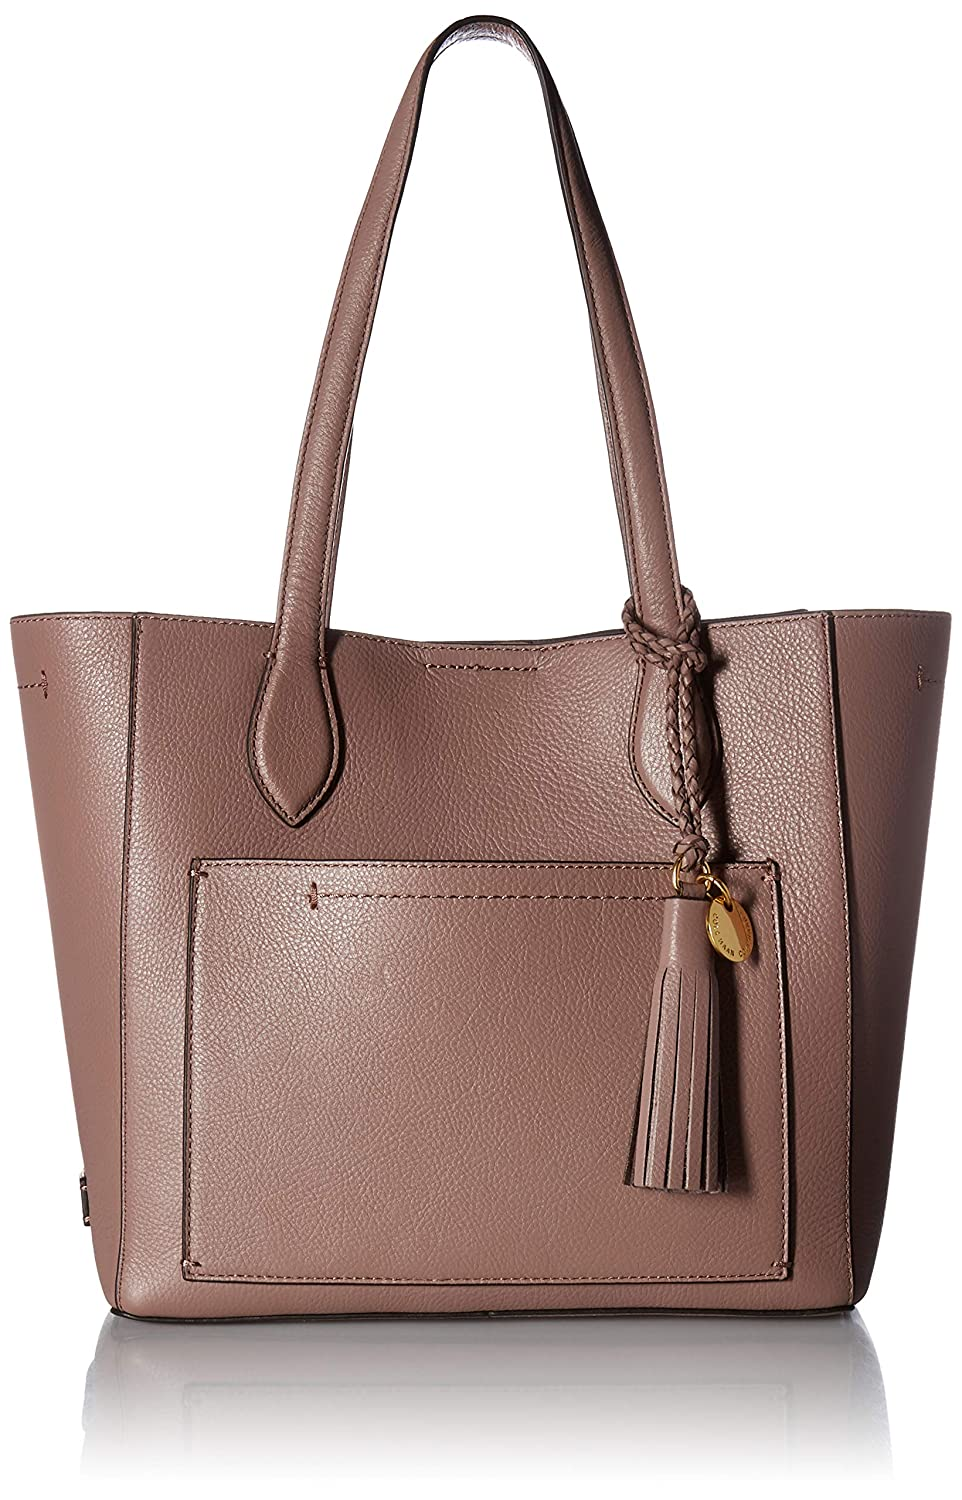 977d460b6d Cole Haan Piper Small Leather Tote Bag, barbados cherry: Handbags:  Amazon.com